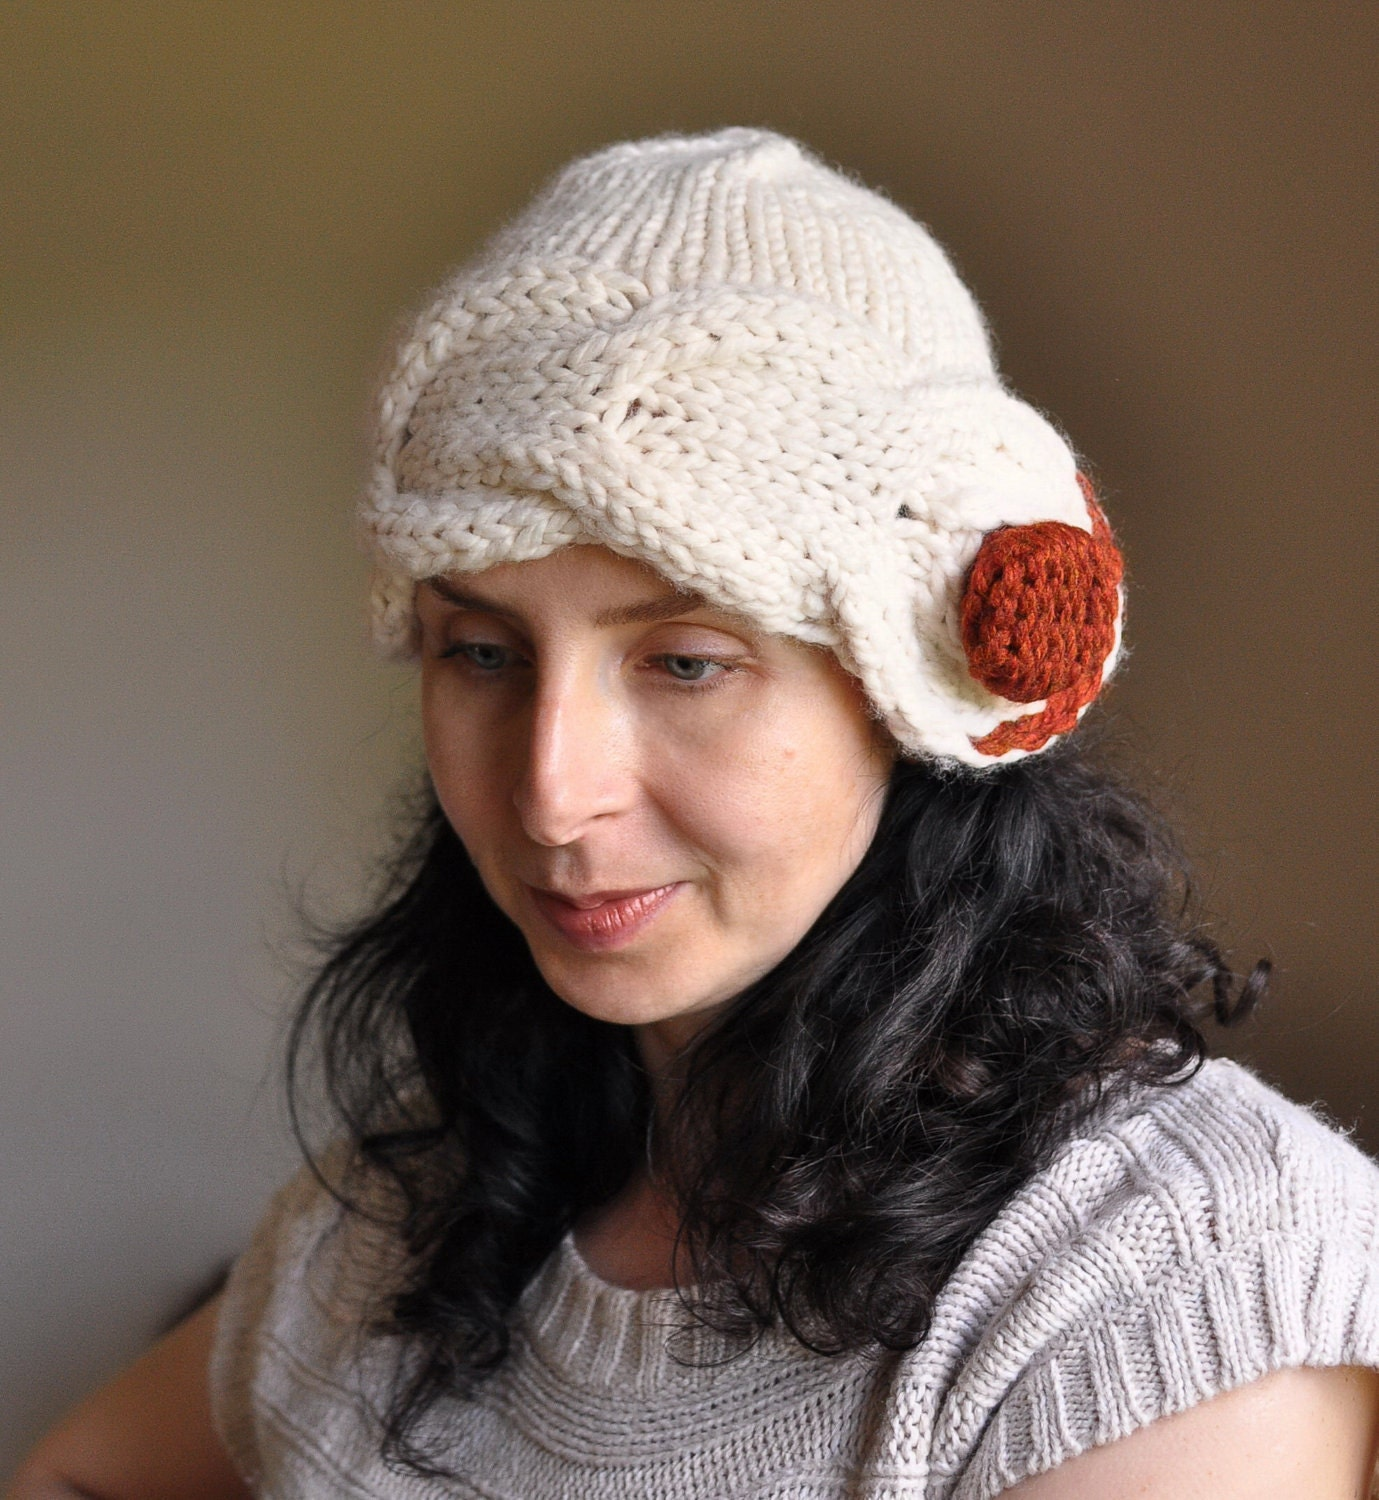 Freezebaby Hat - classic cable super chunky designer cloche hat - MADE TO ORDER in 16 colors